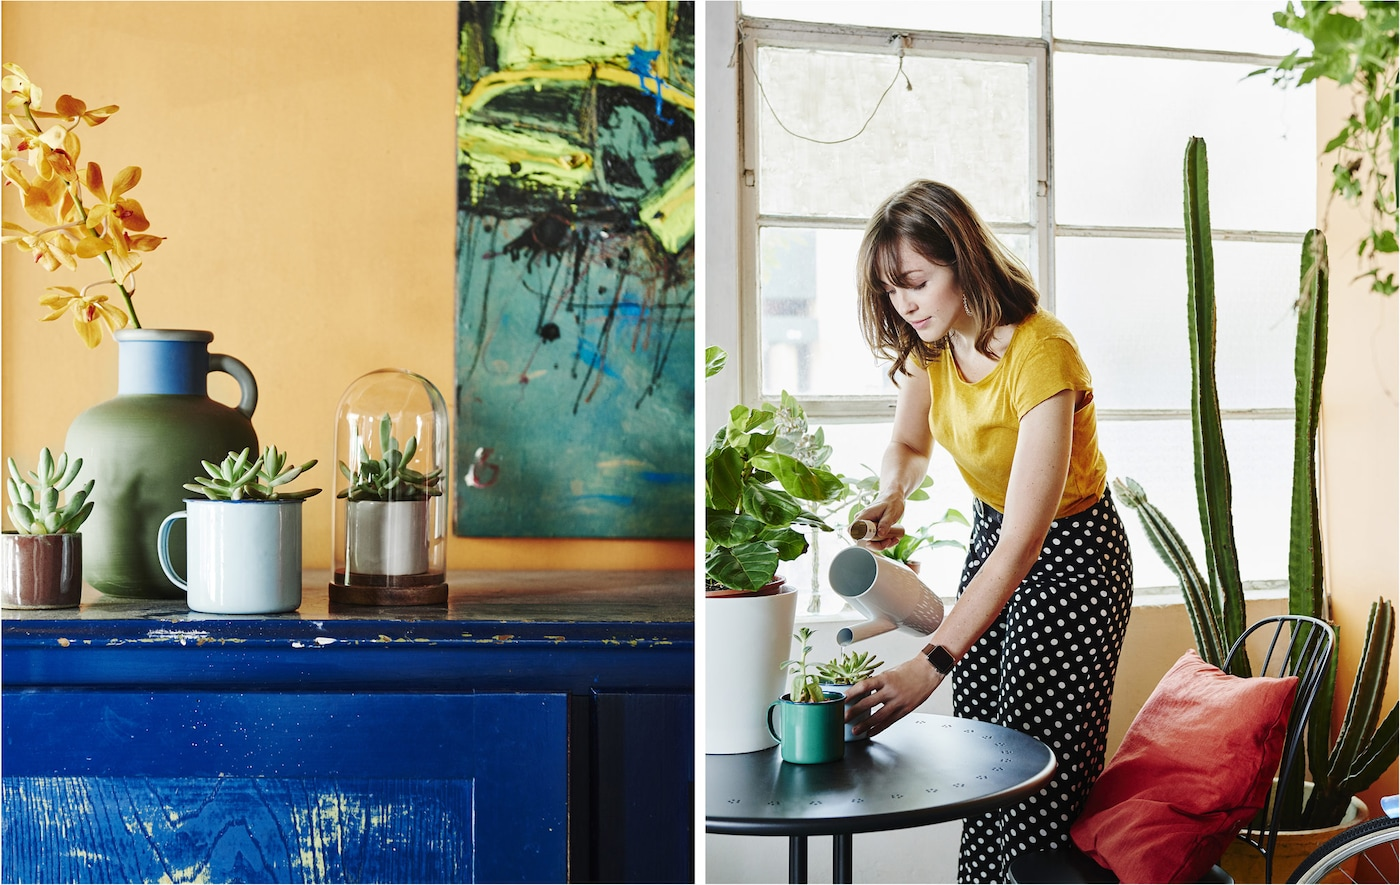 Pot plants on a blue sideboard against an orange wall and a woman watering plants on a black table.